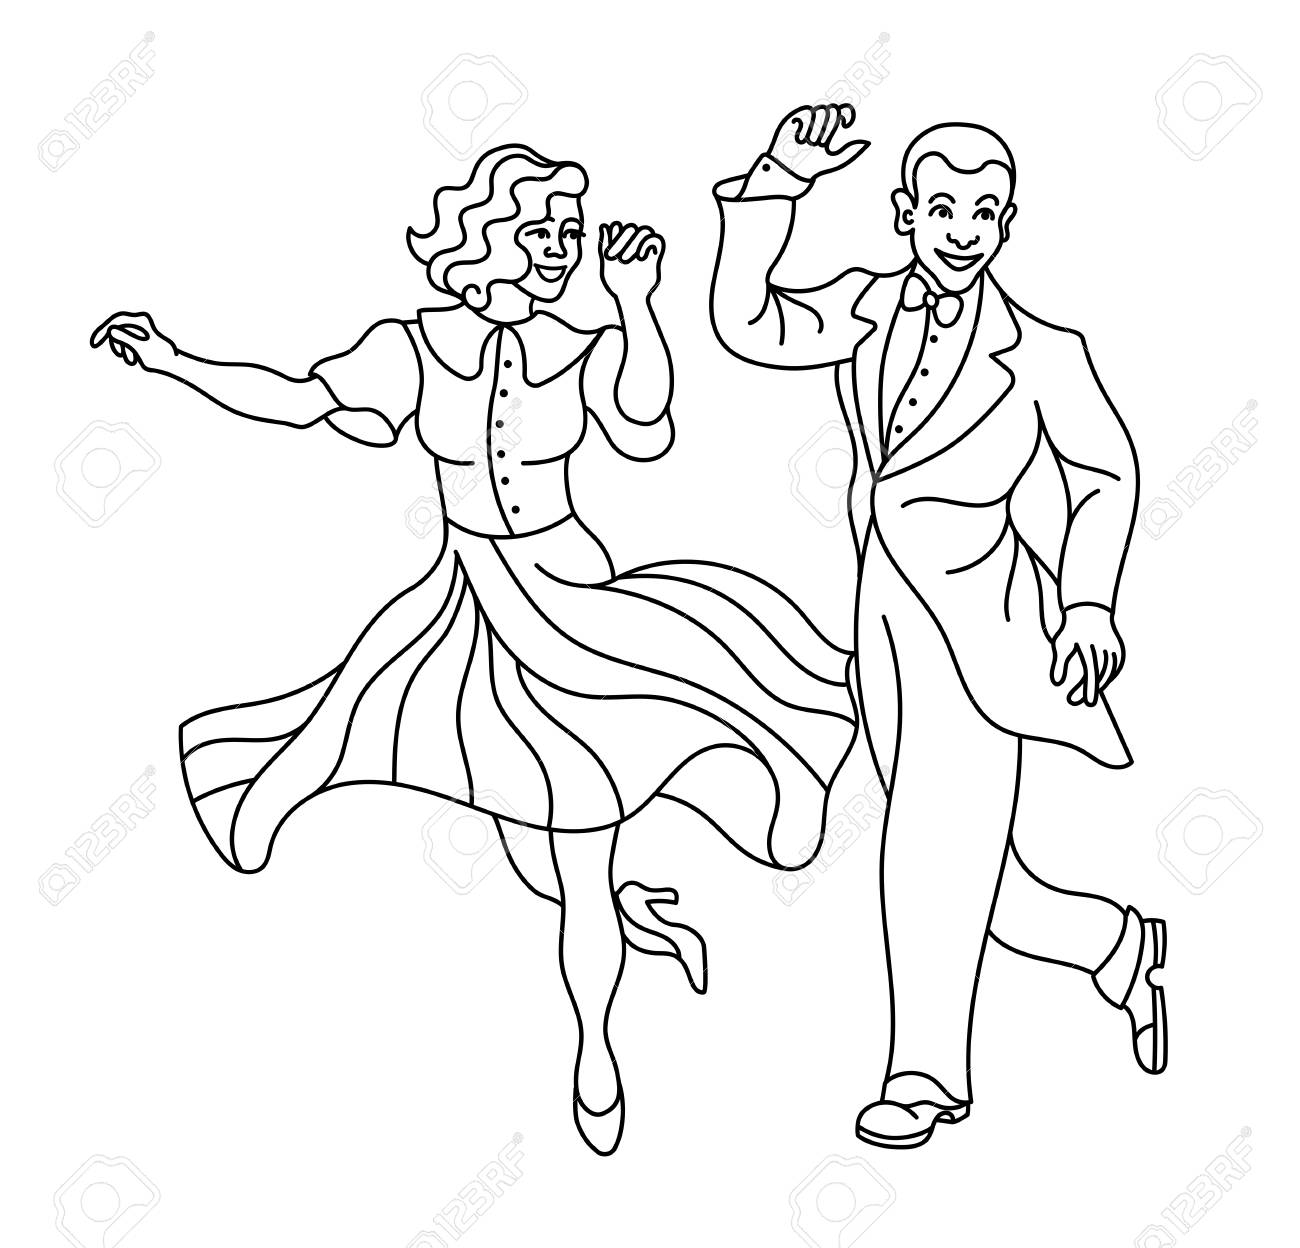 Pattern Retro Dance.Dance Couple Silhouette. Seamless Retro Silhouette..  Royalty Free Cliparts, Vectors, And Stock Illustration. Image 90628115.